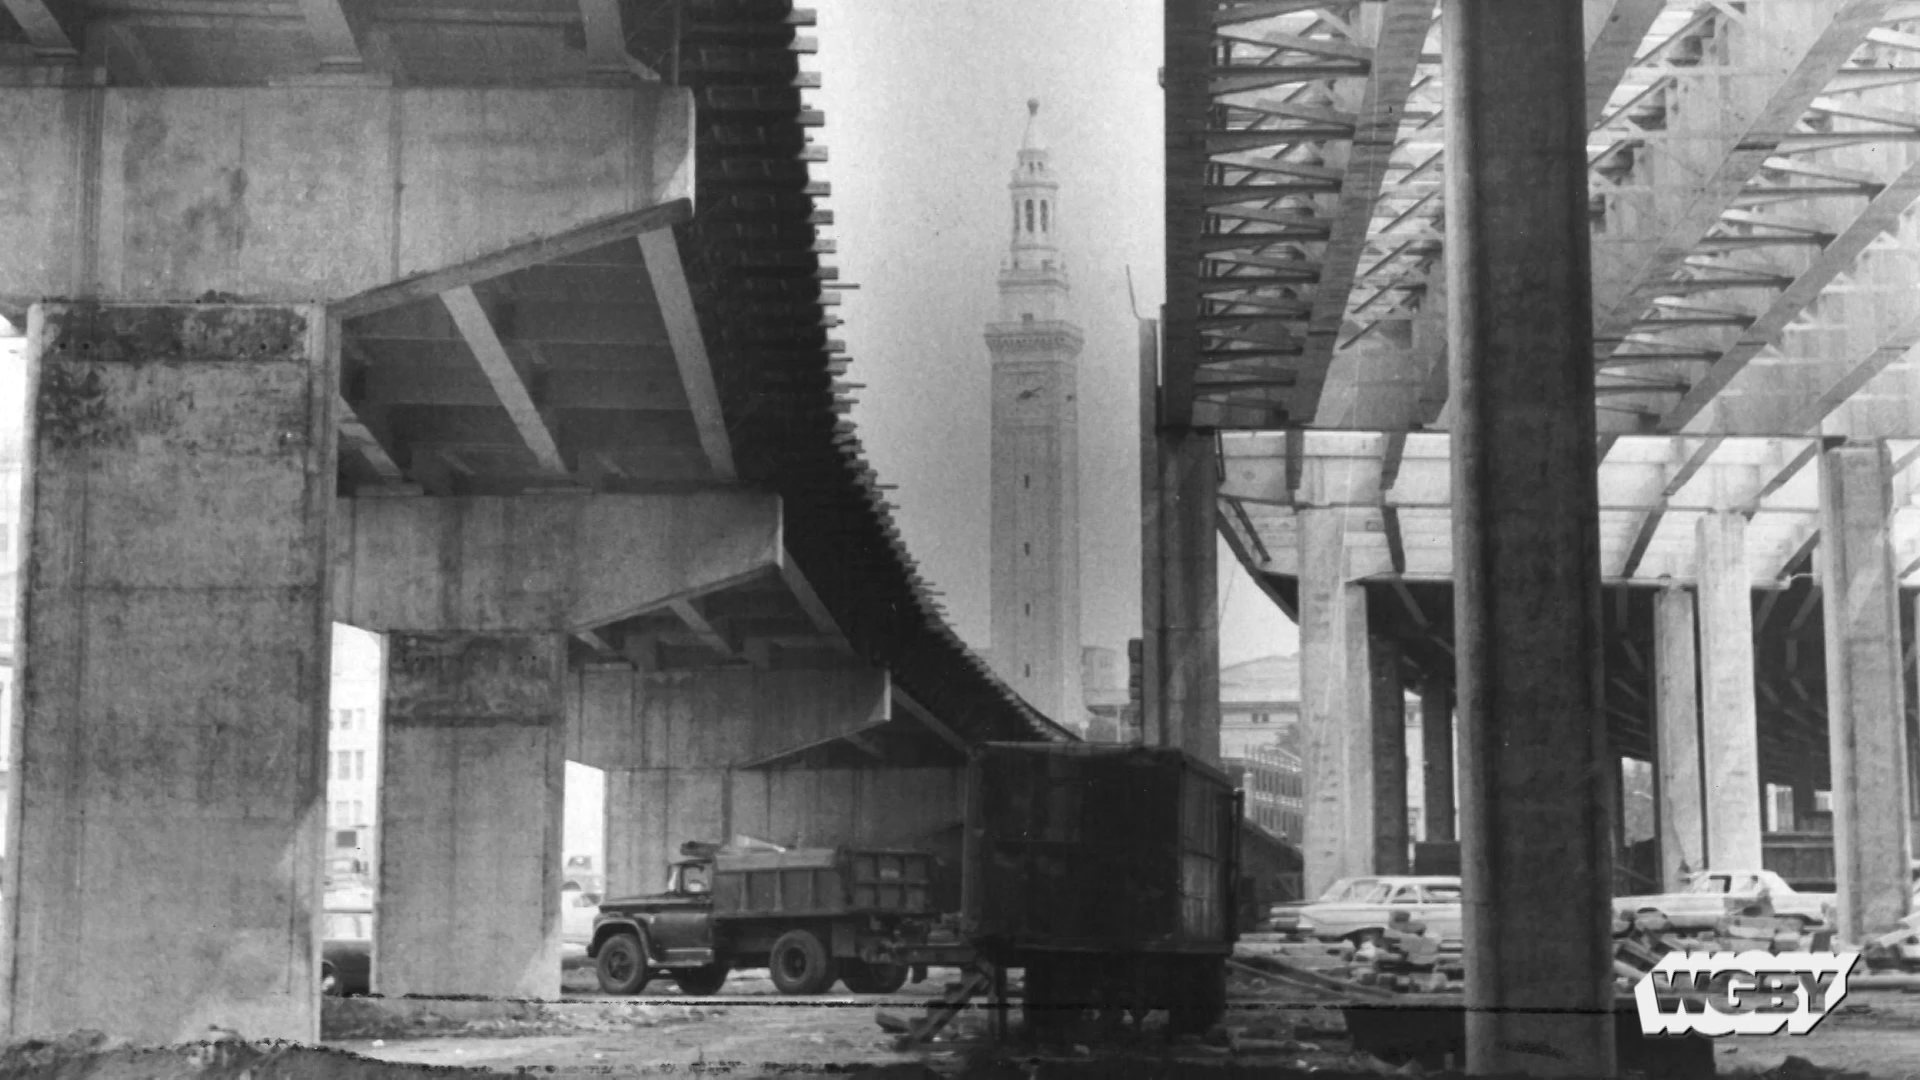 Events That Rocked the Region: The Construction of Interstate 91